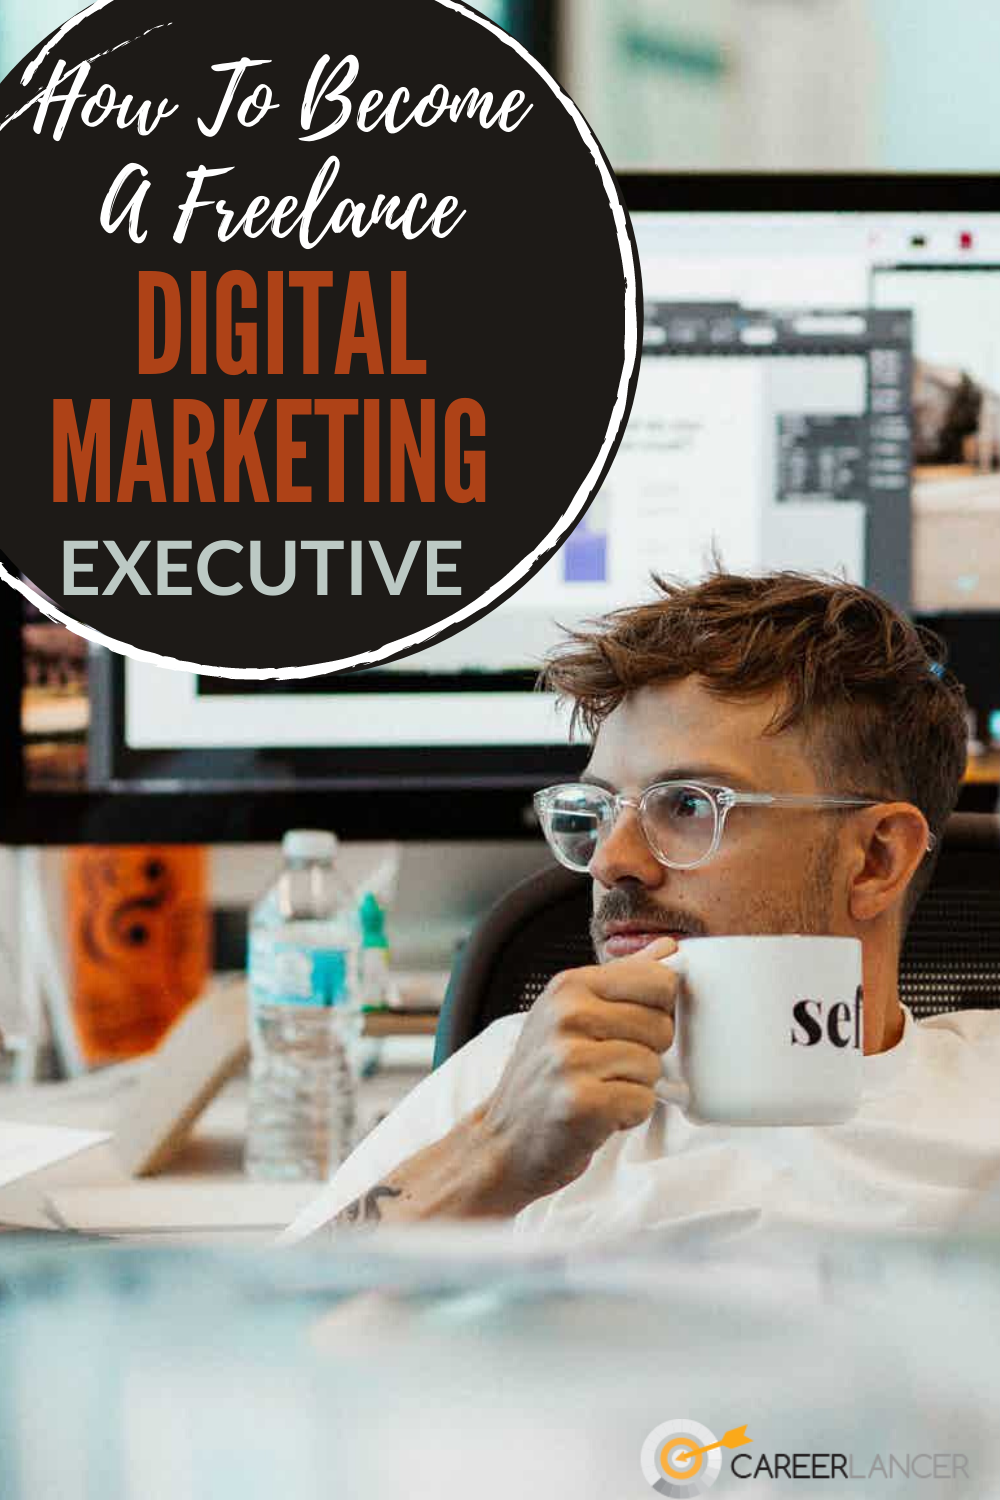 How To Become A Freelance Digital Marketing Executive Careerlancer In 2020 Digital Marketing Digital Marketing Manager Marketing Jobs